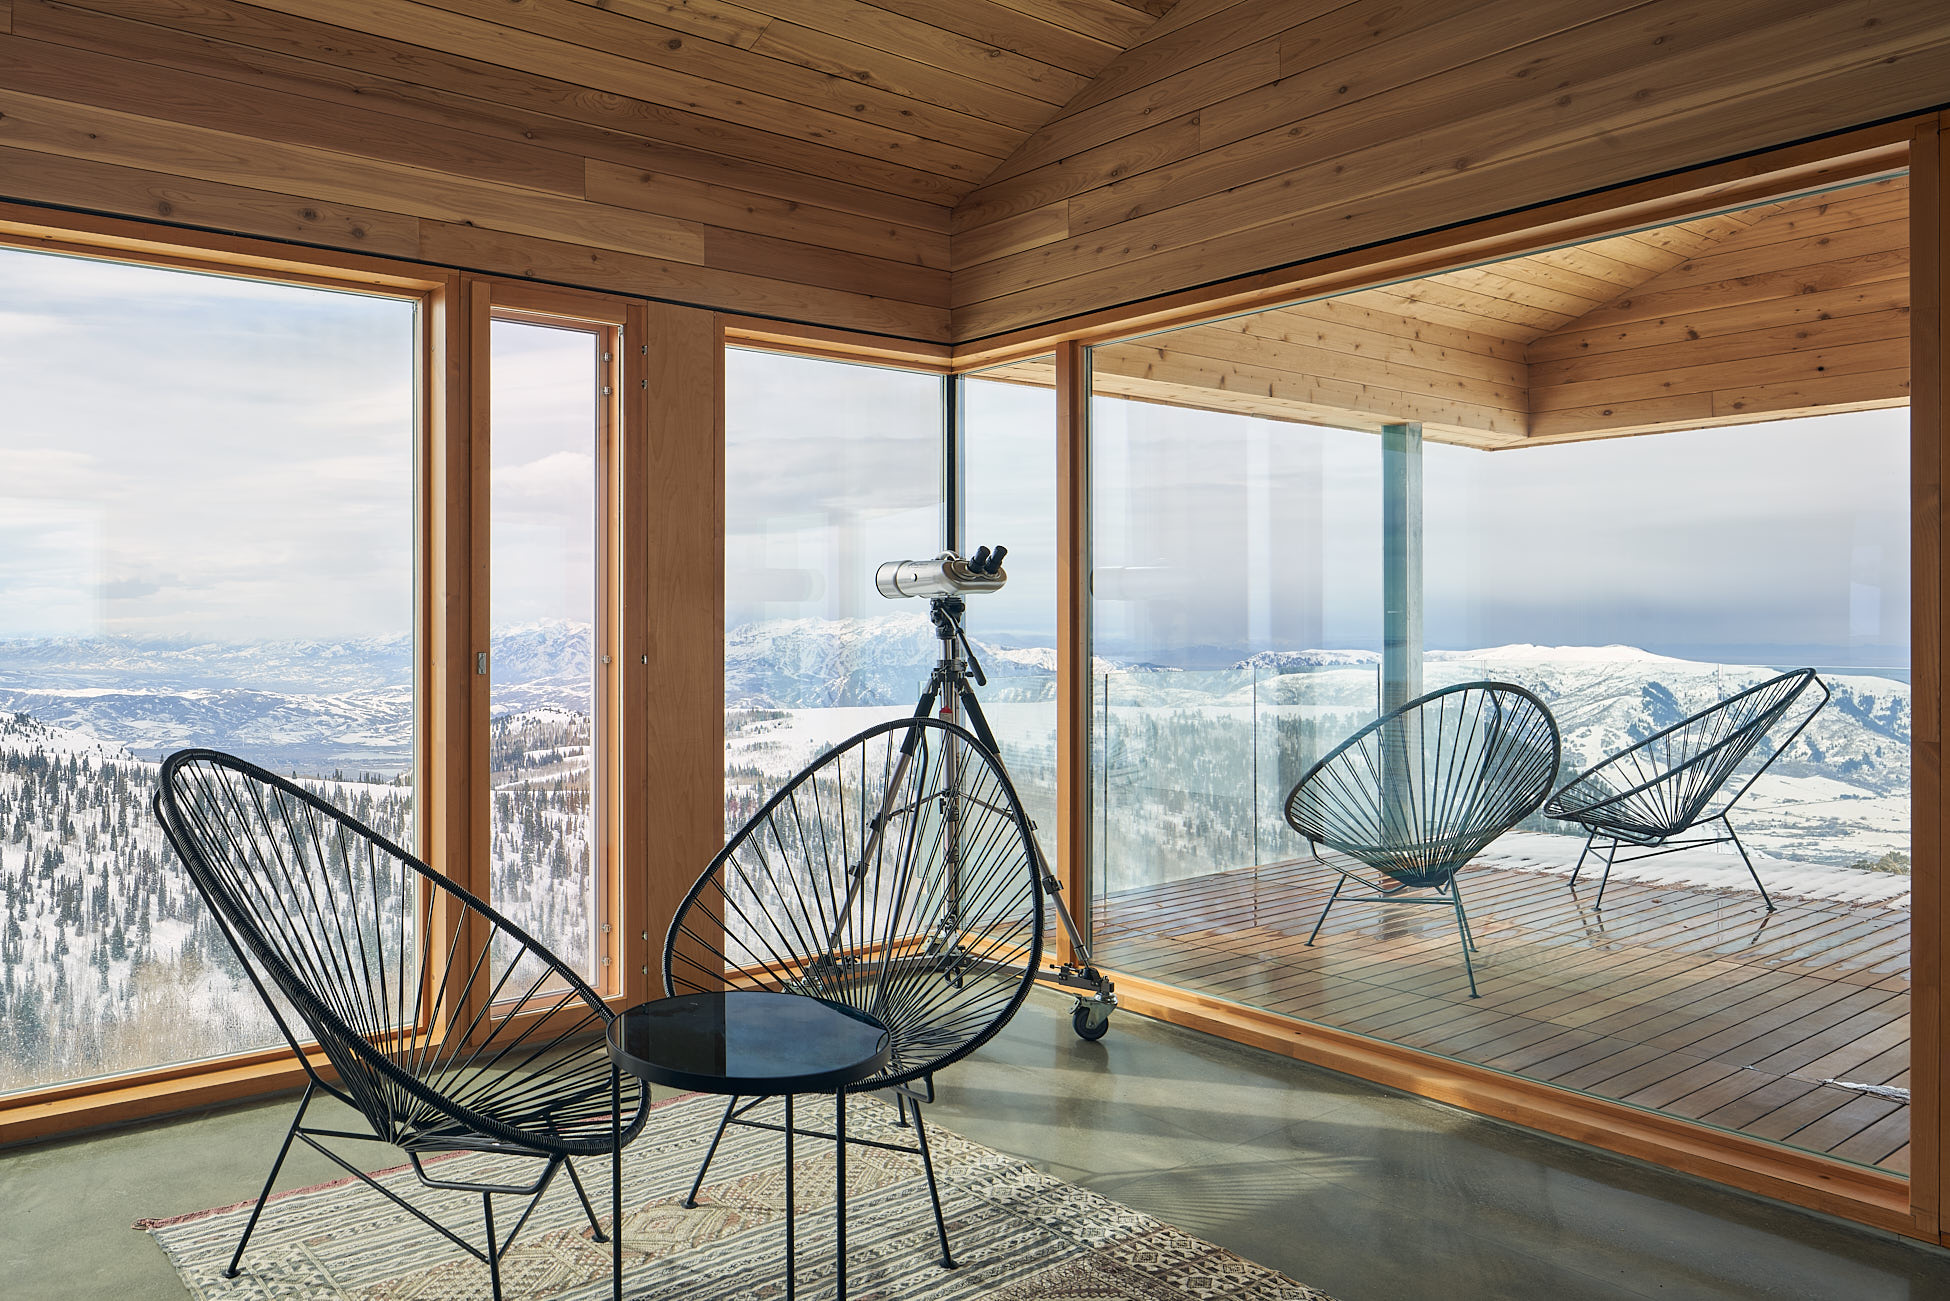 Photographie d'architecture chambre double MacKay-Lyons Sweetapple Architects